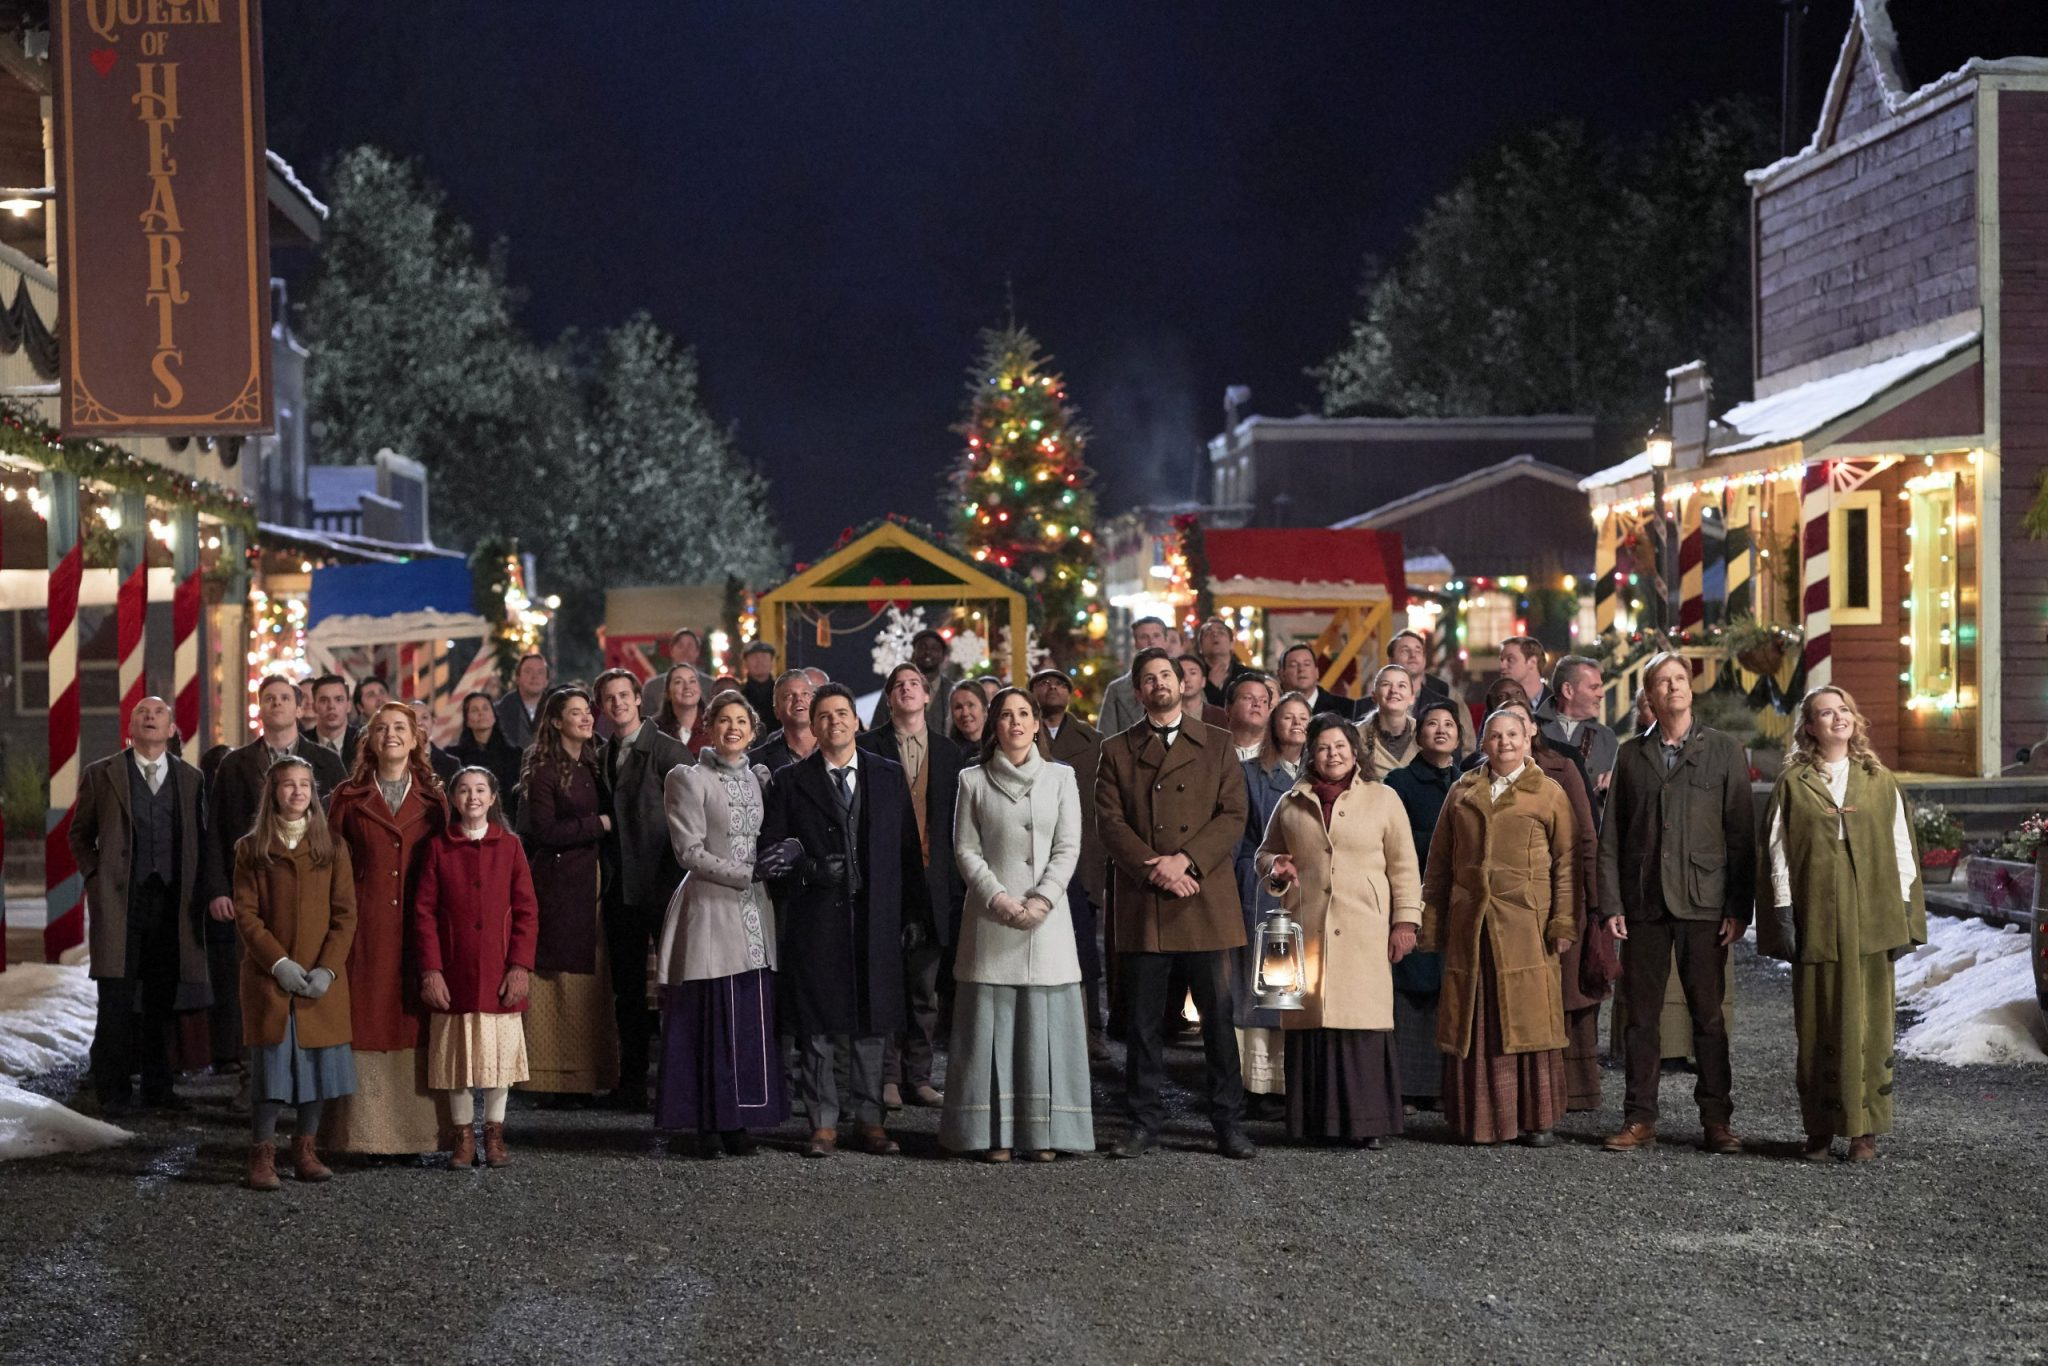 When Calls The Heart 2020 Christmas Tree When Calls The Heart Christmas Movie Shelved, Hallmark Shares